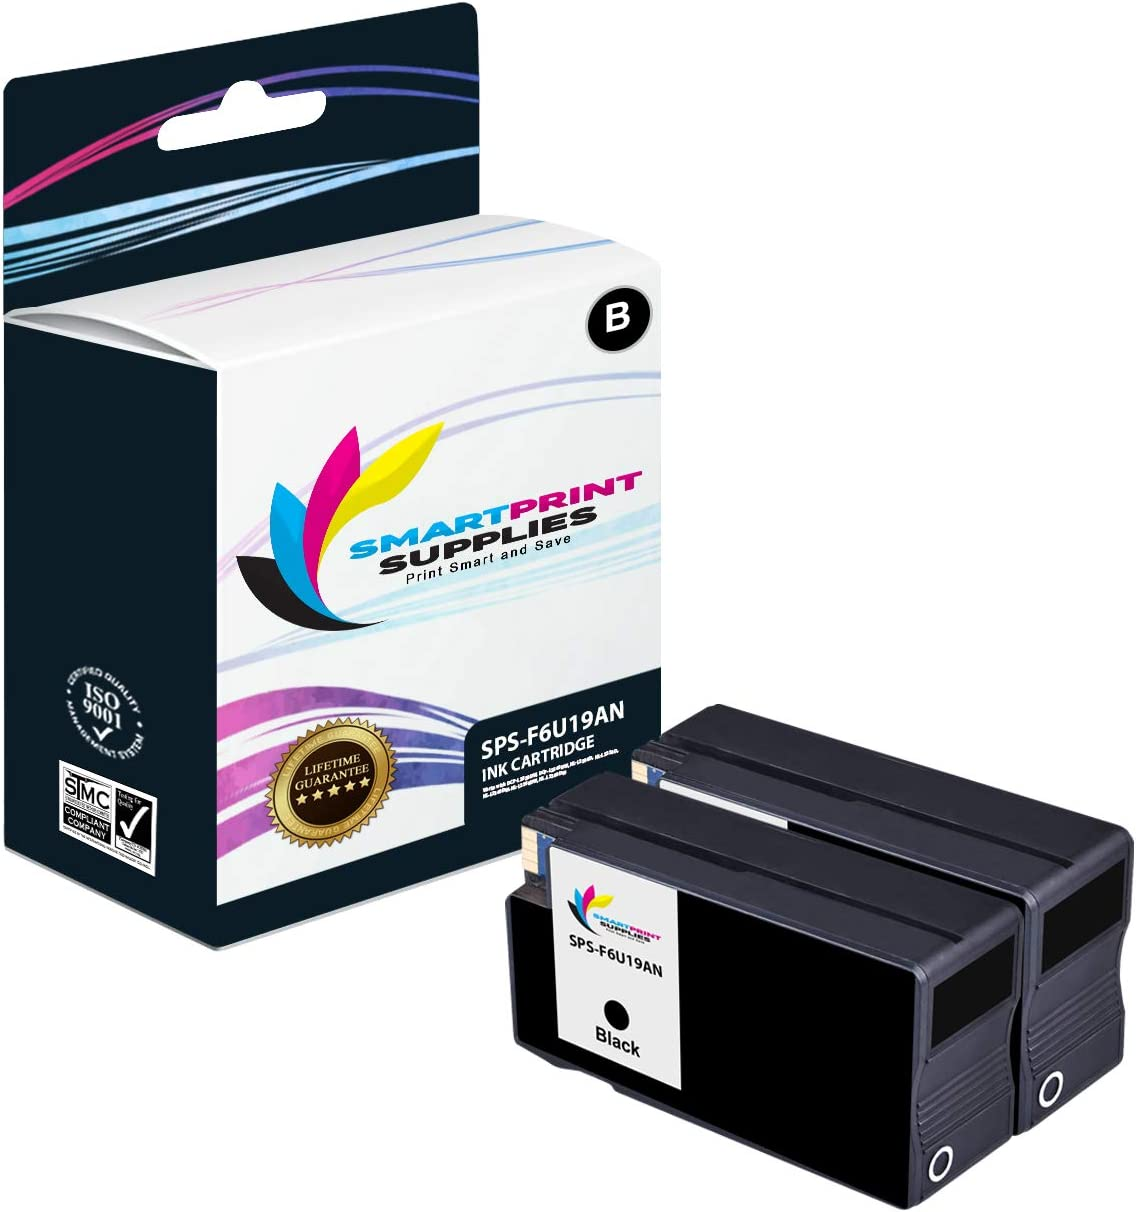 2,000 Pages - 2 Pack Pro 8210 8216 8218 8710 Printers Smart Print Supplies Compatible 952XL F6U19AN Black High Yield Ink Cartridge Replacement for HP OfficeJet 7740 8702 8715